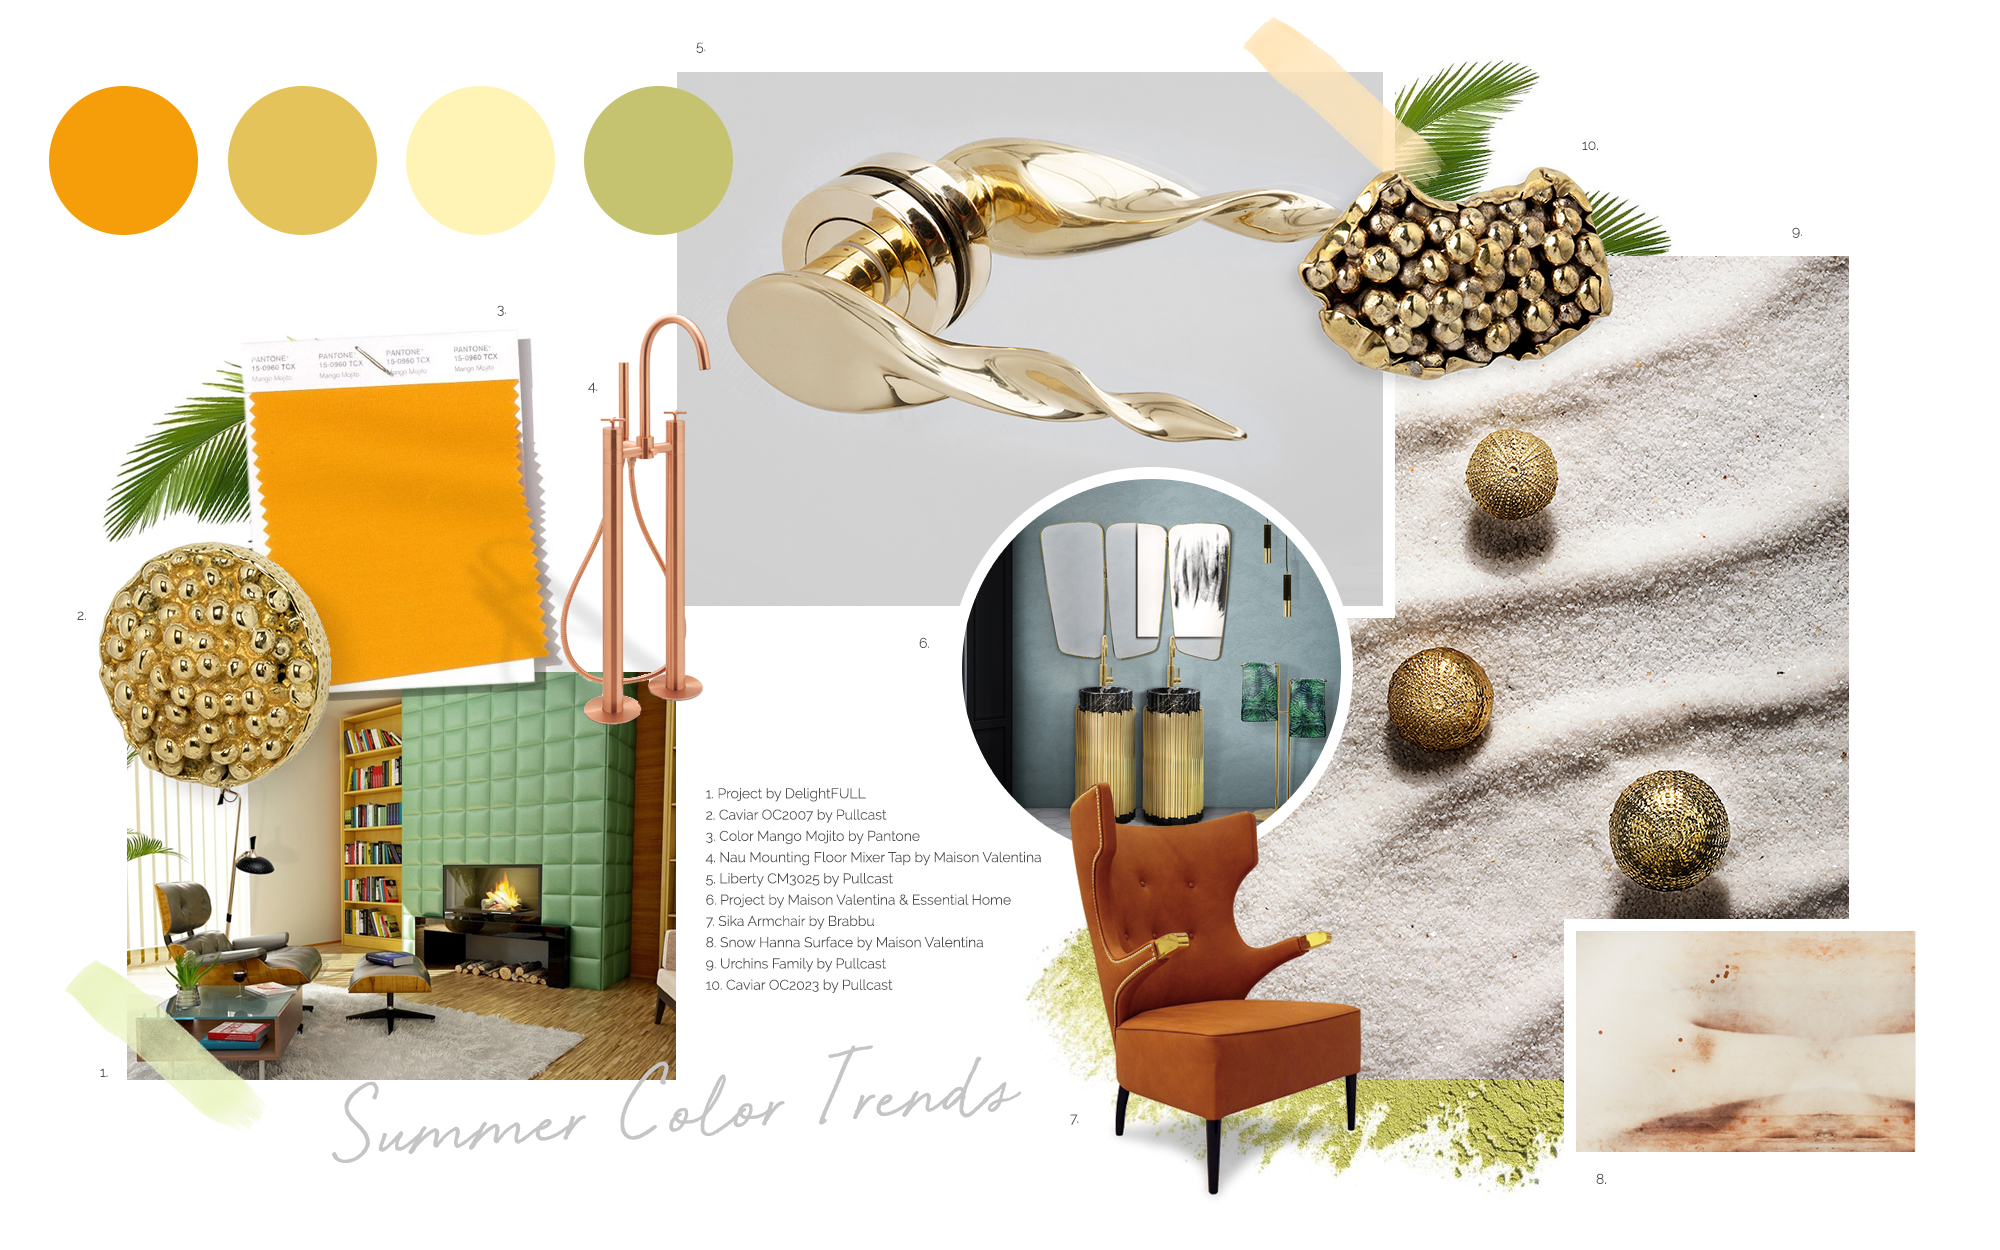 Summer Colors Trends